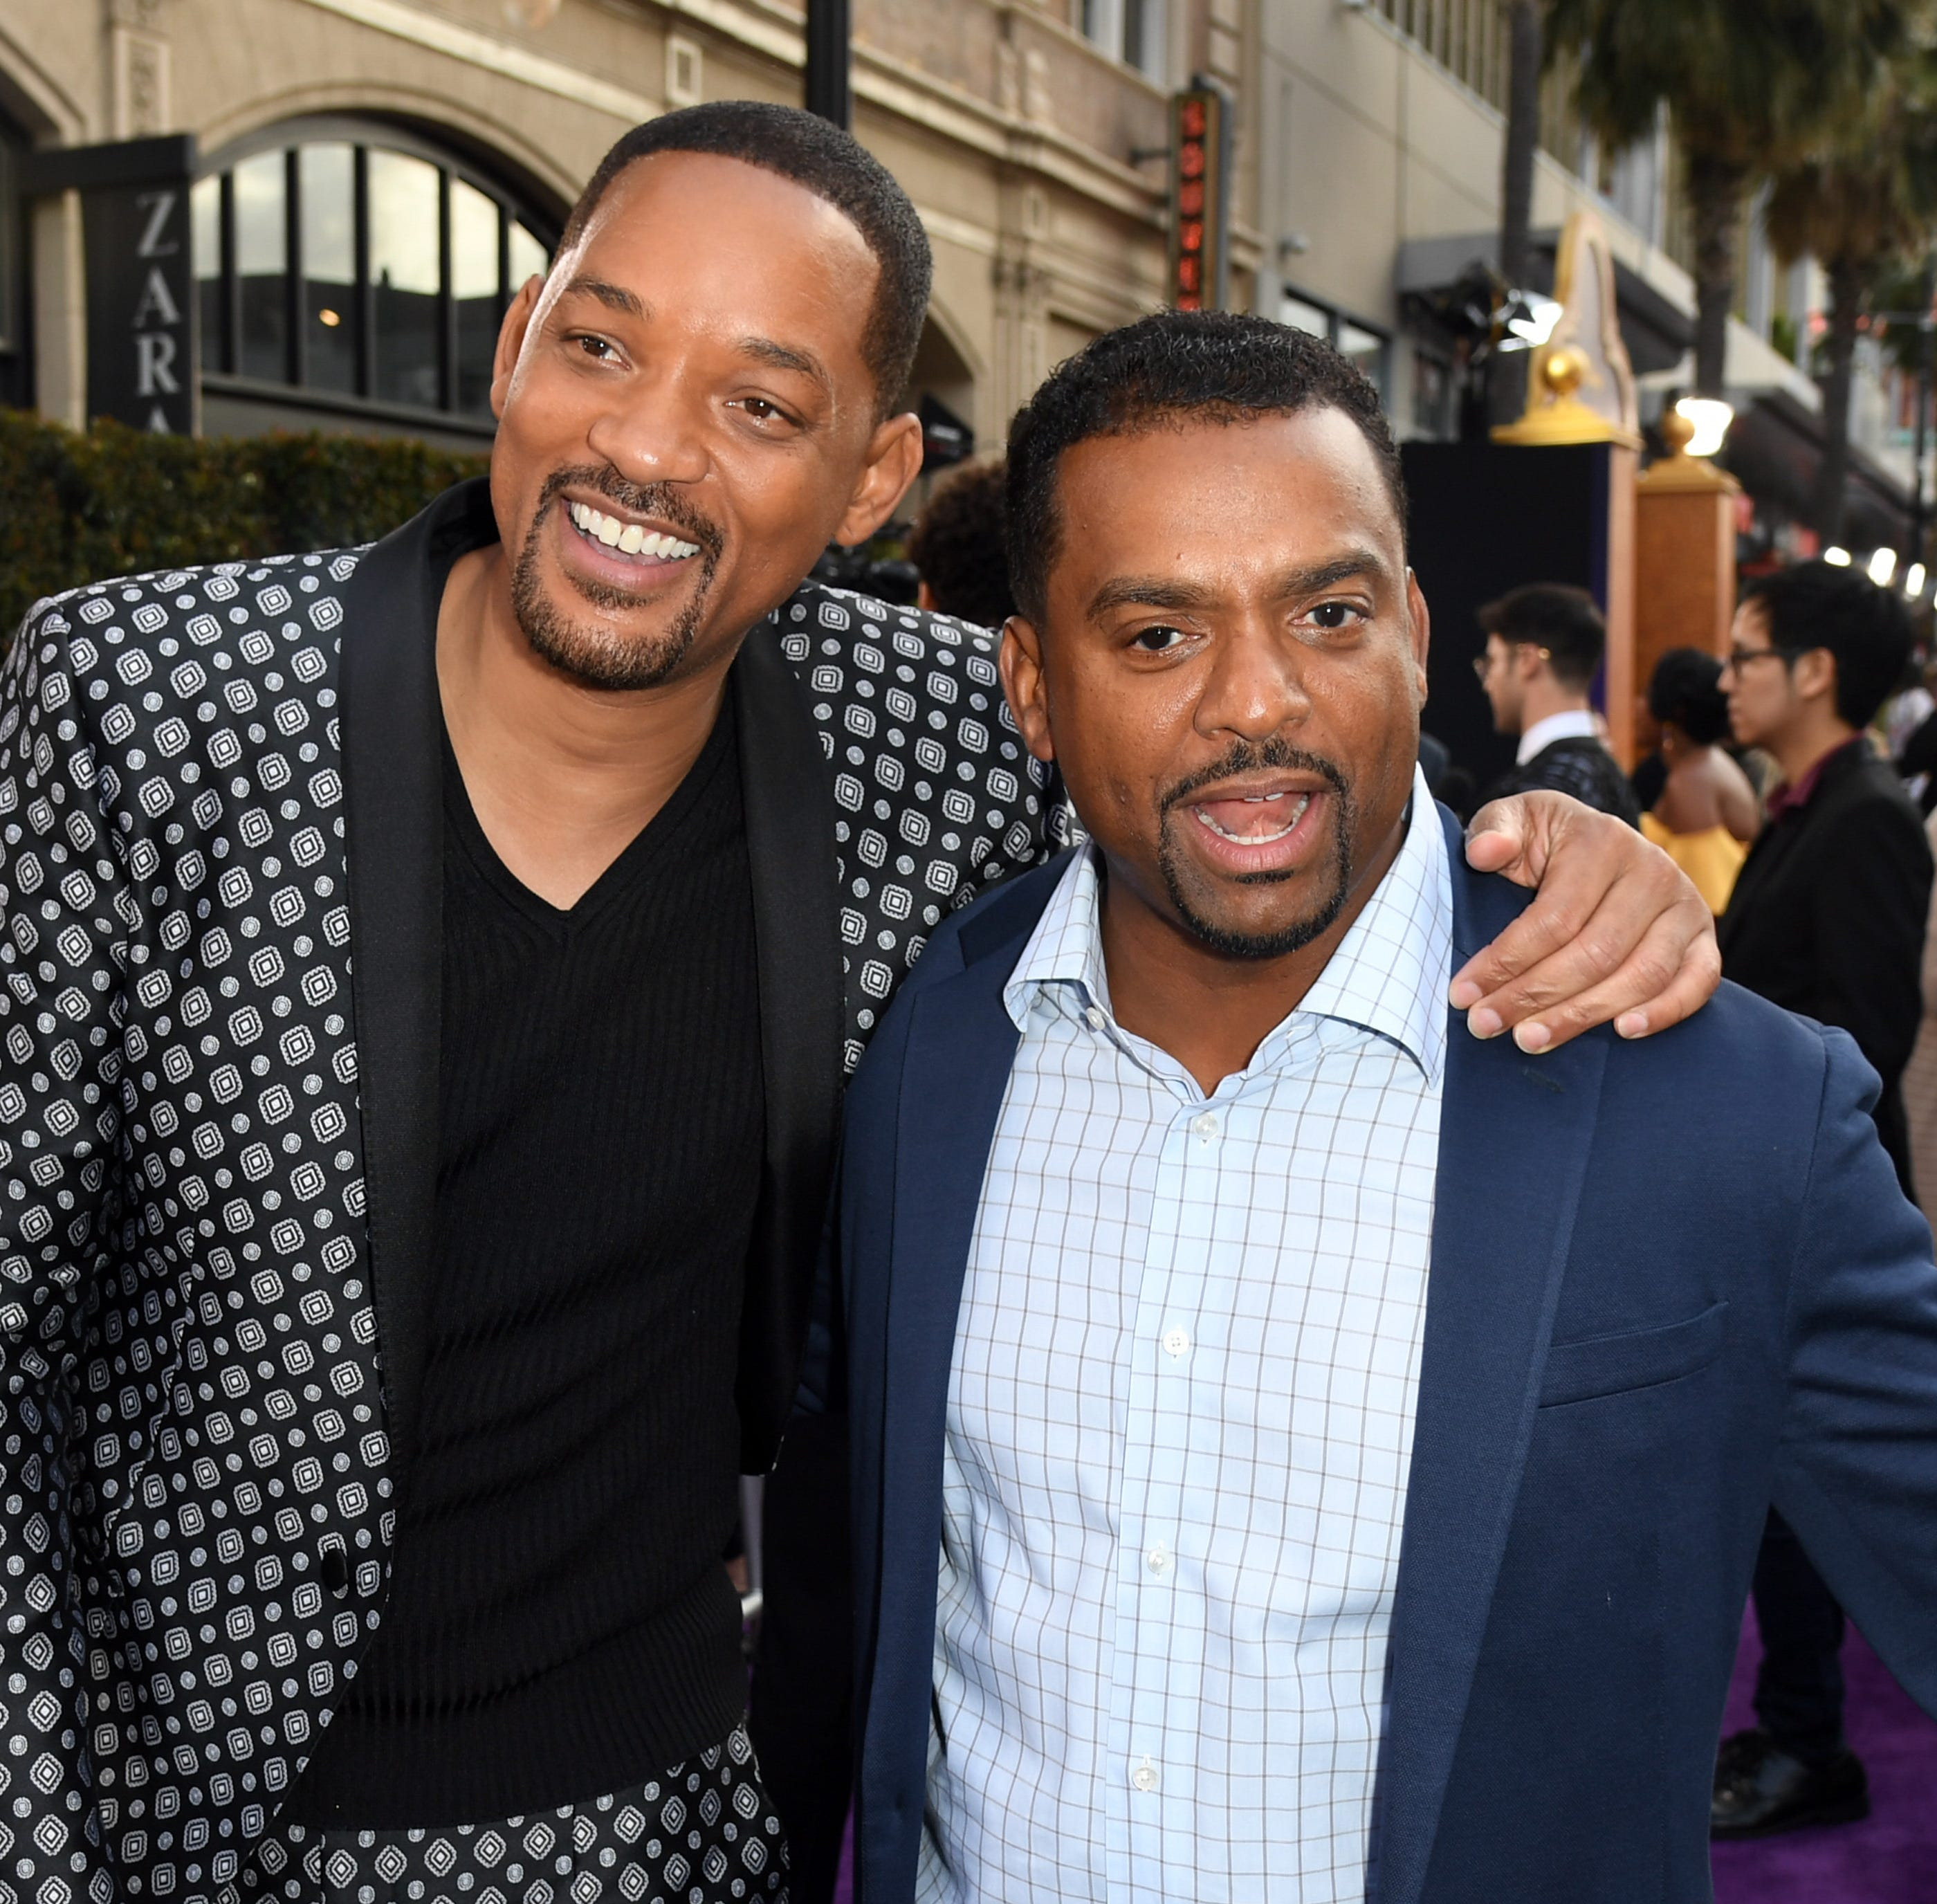 "LOS ANGELES, CALIFORNIA - MAY 21: Will Smith and Alfonso Ribeiro attends the premiere of Disney's ""Aladdin"" at El Capitan Theatre on May 21, 2019 in Los Angeles, California. (Photo by Kevin Winter/Getty Images) ORG XMIT: 775339010 ORIG FILE ID: 1150847401"